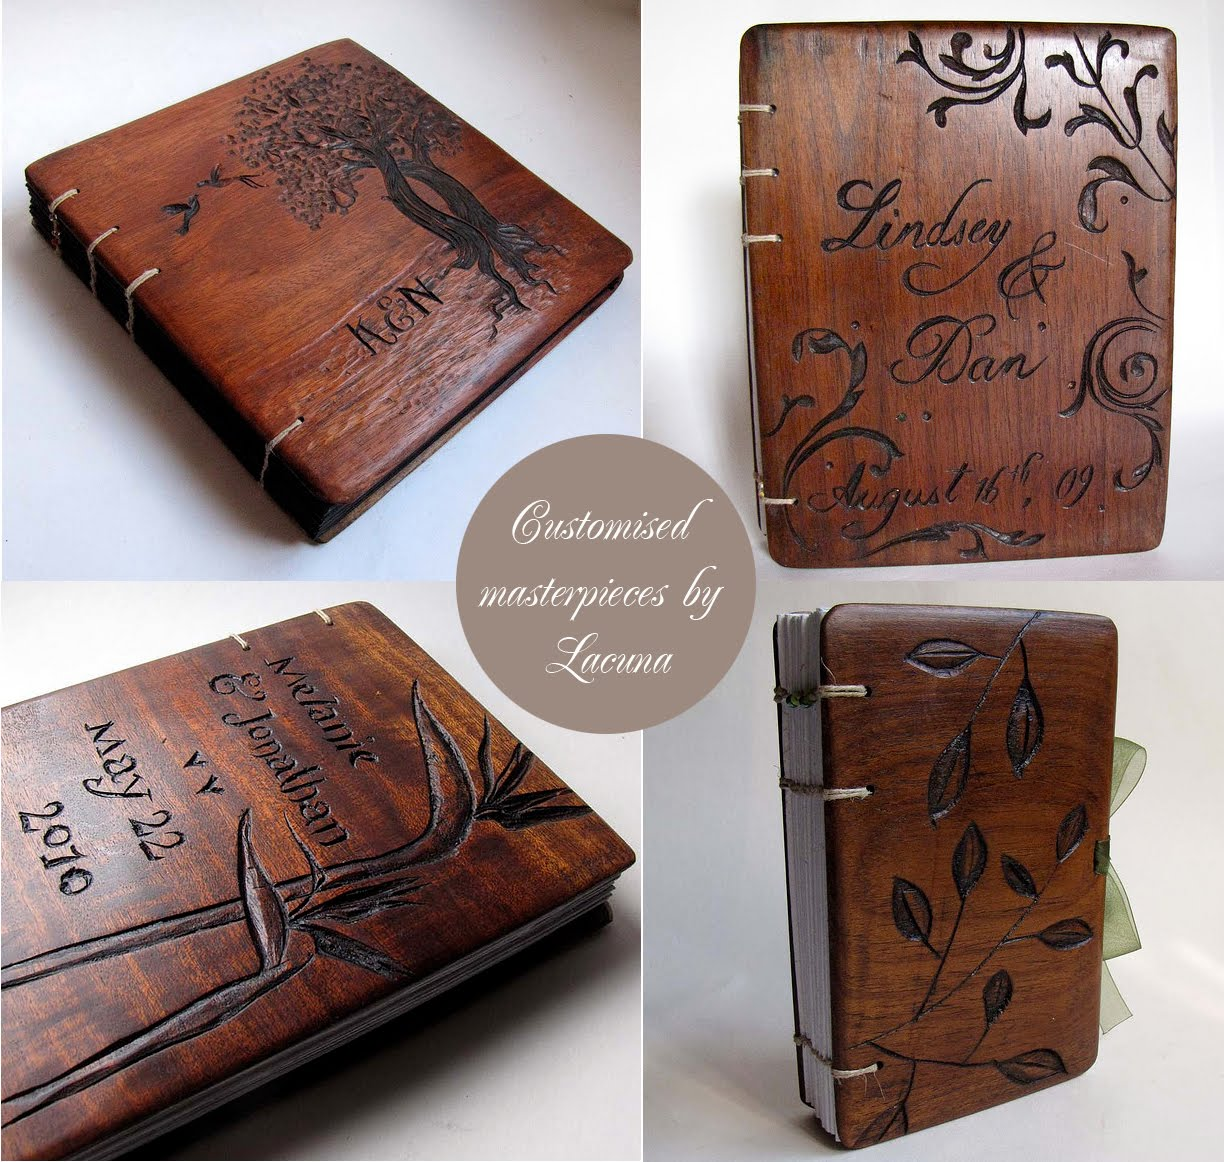 Book Cover Handmade Uk : Artnlight wooden book covers by lacuna works